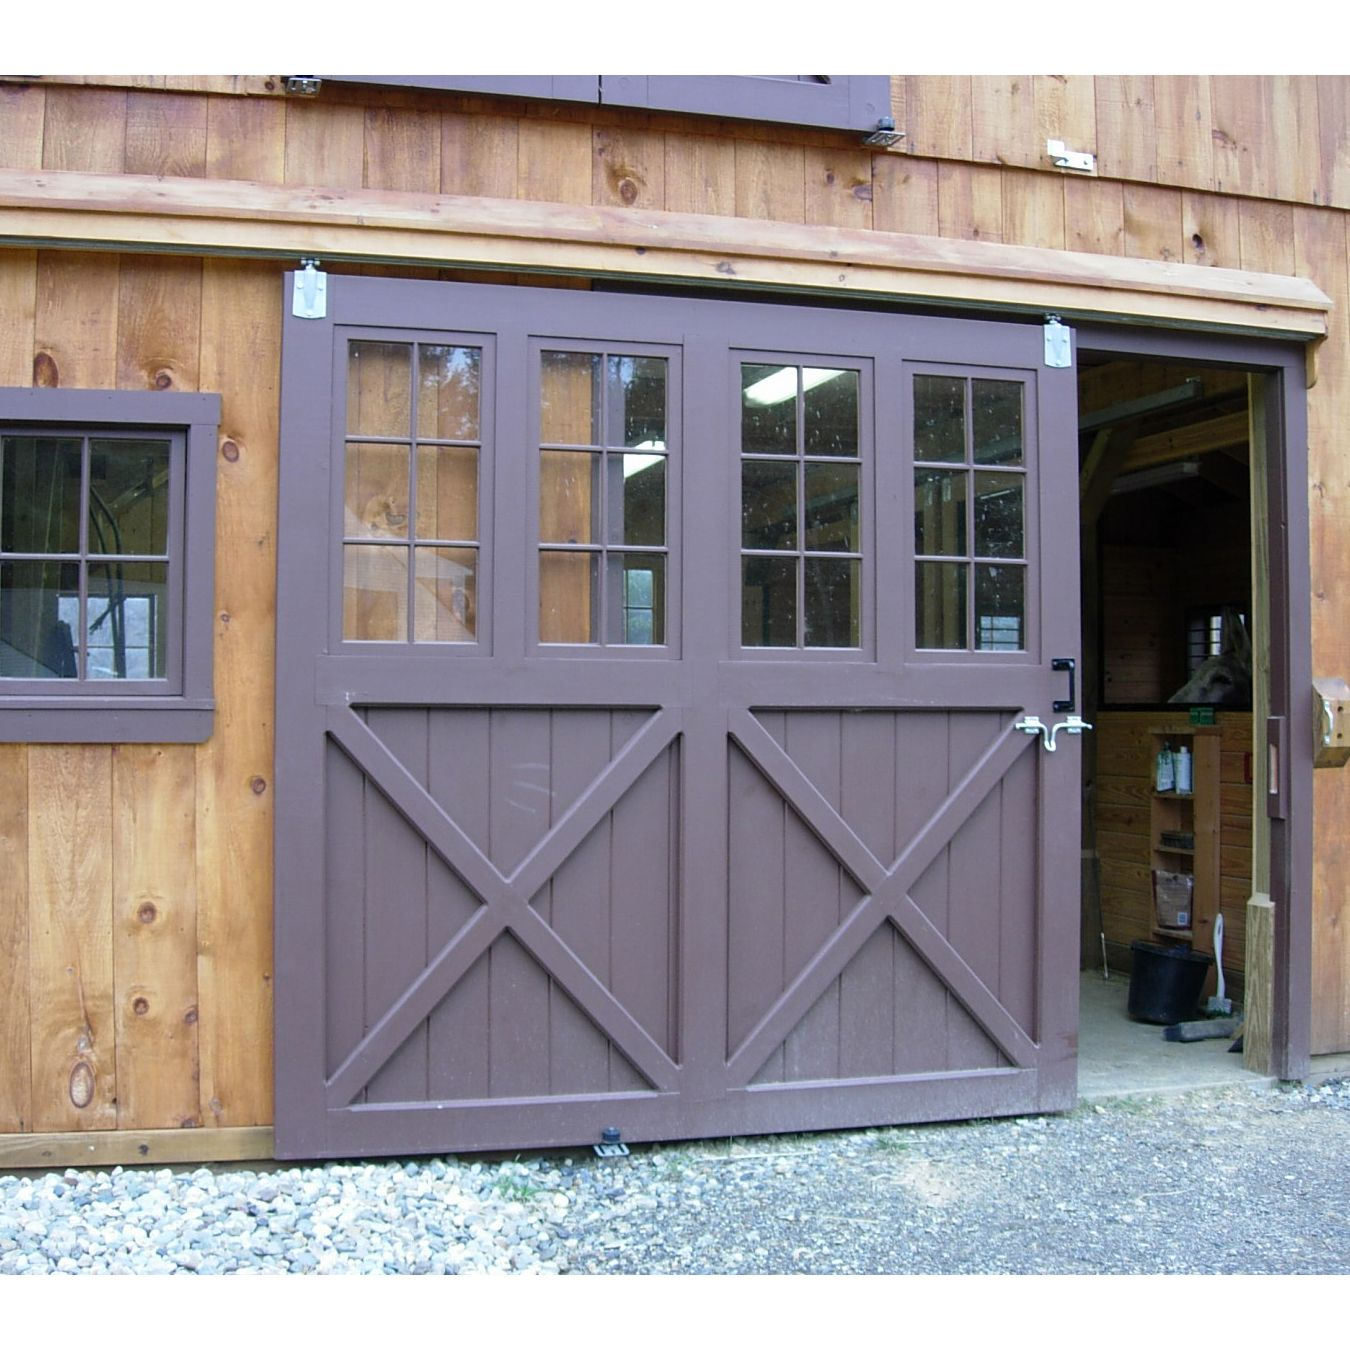 Sliding Barn Doorn With Glass Barn Depot Barn